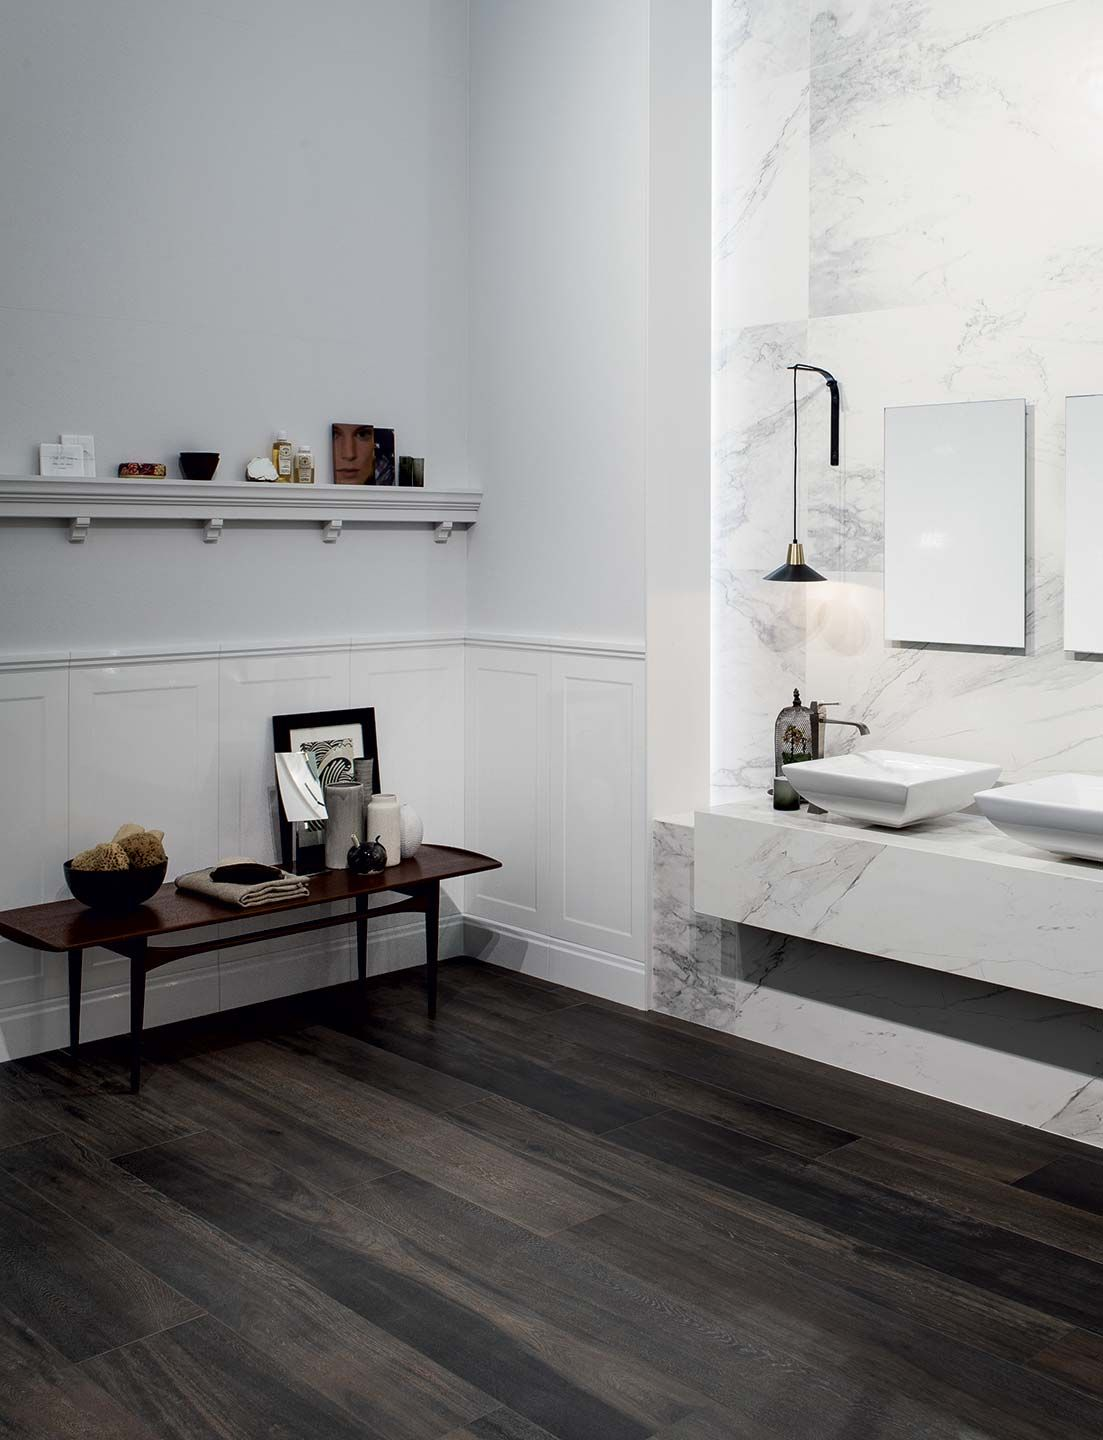 Charmant Look At This Lovely Wainscoting For Your Bathroom. Point It Out With A  Contrast Dark Wood Effect Floor And You Have A Unique Bathroom Style: Wooden  Tile Of ...